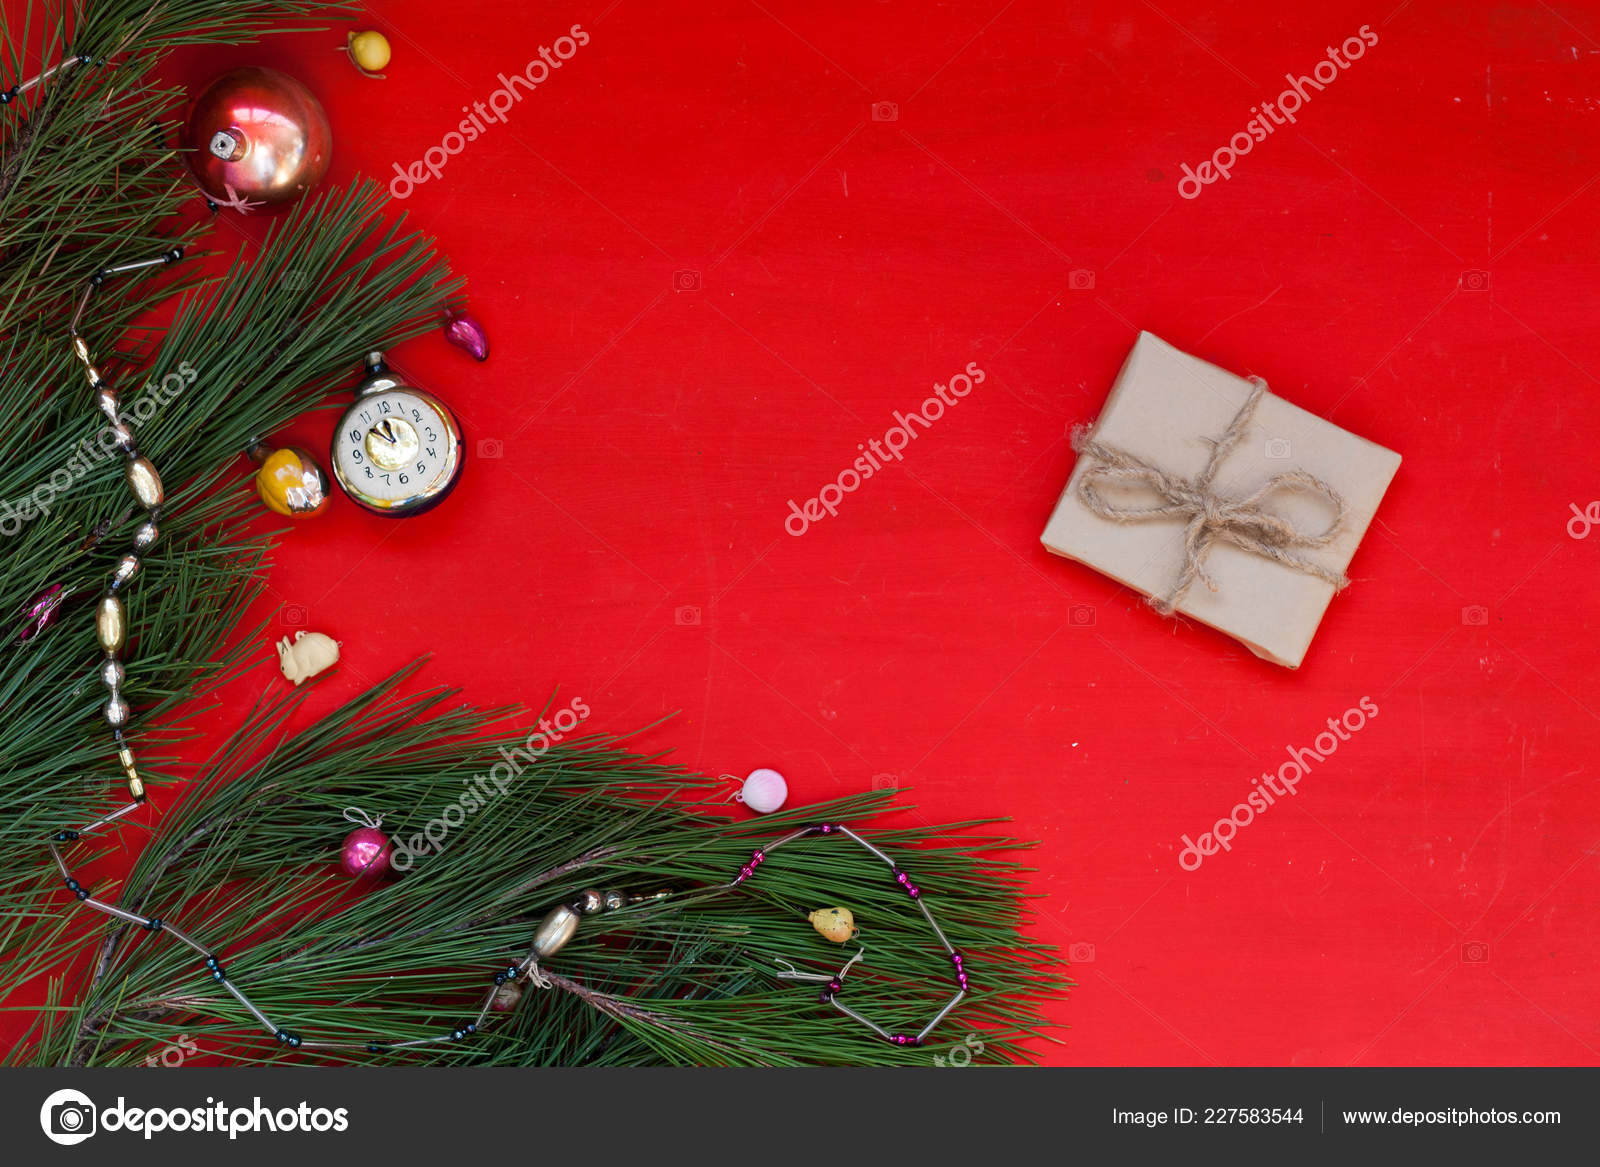 winter Christmas background Christmas tree holiday gifts new year ...